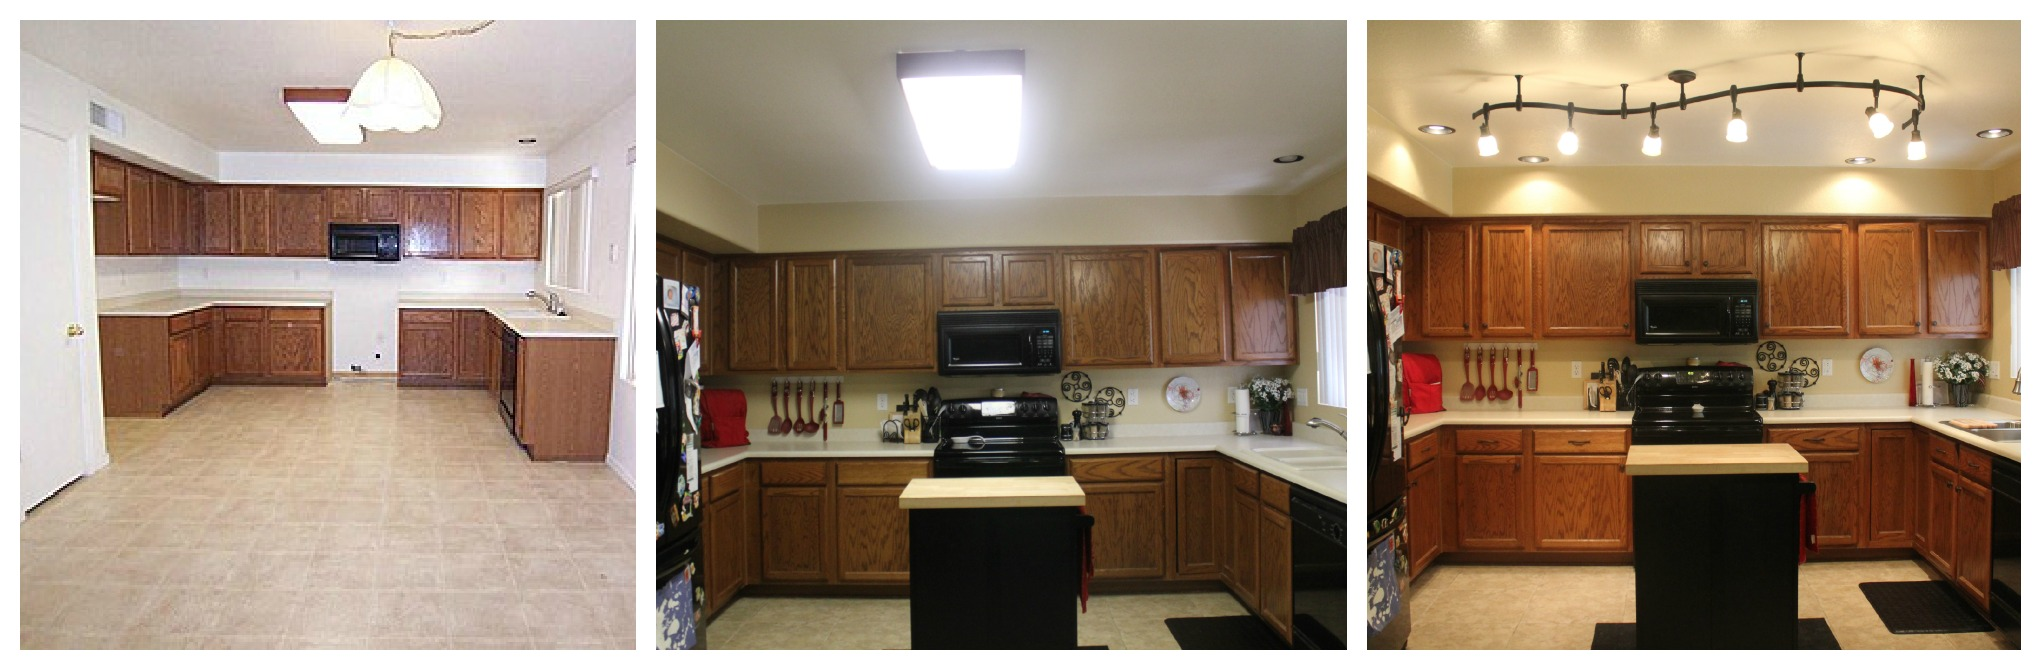 Small Ge Kitchen Spotlight Bulbs